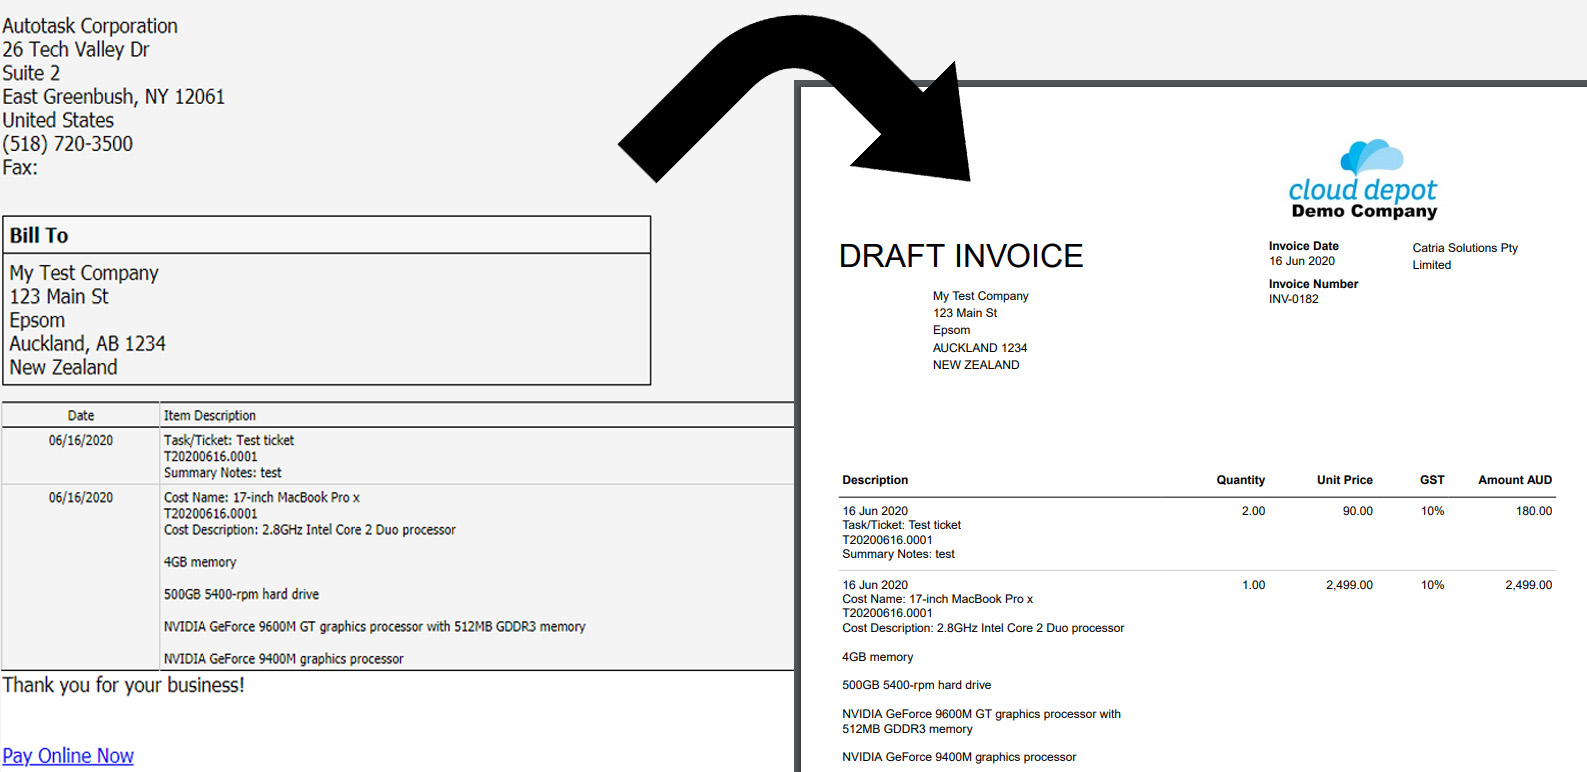 Autotask Invoice   Richard Walker